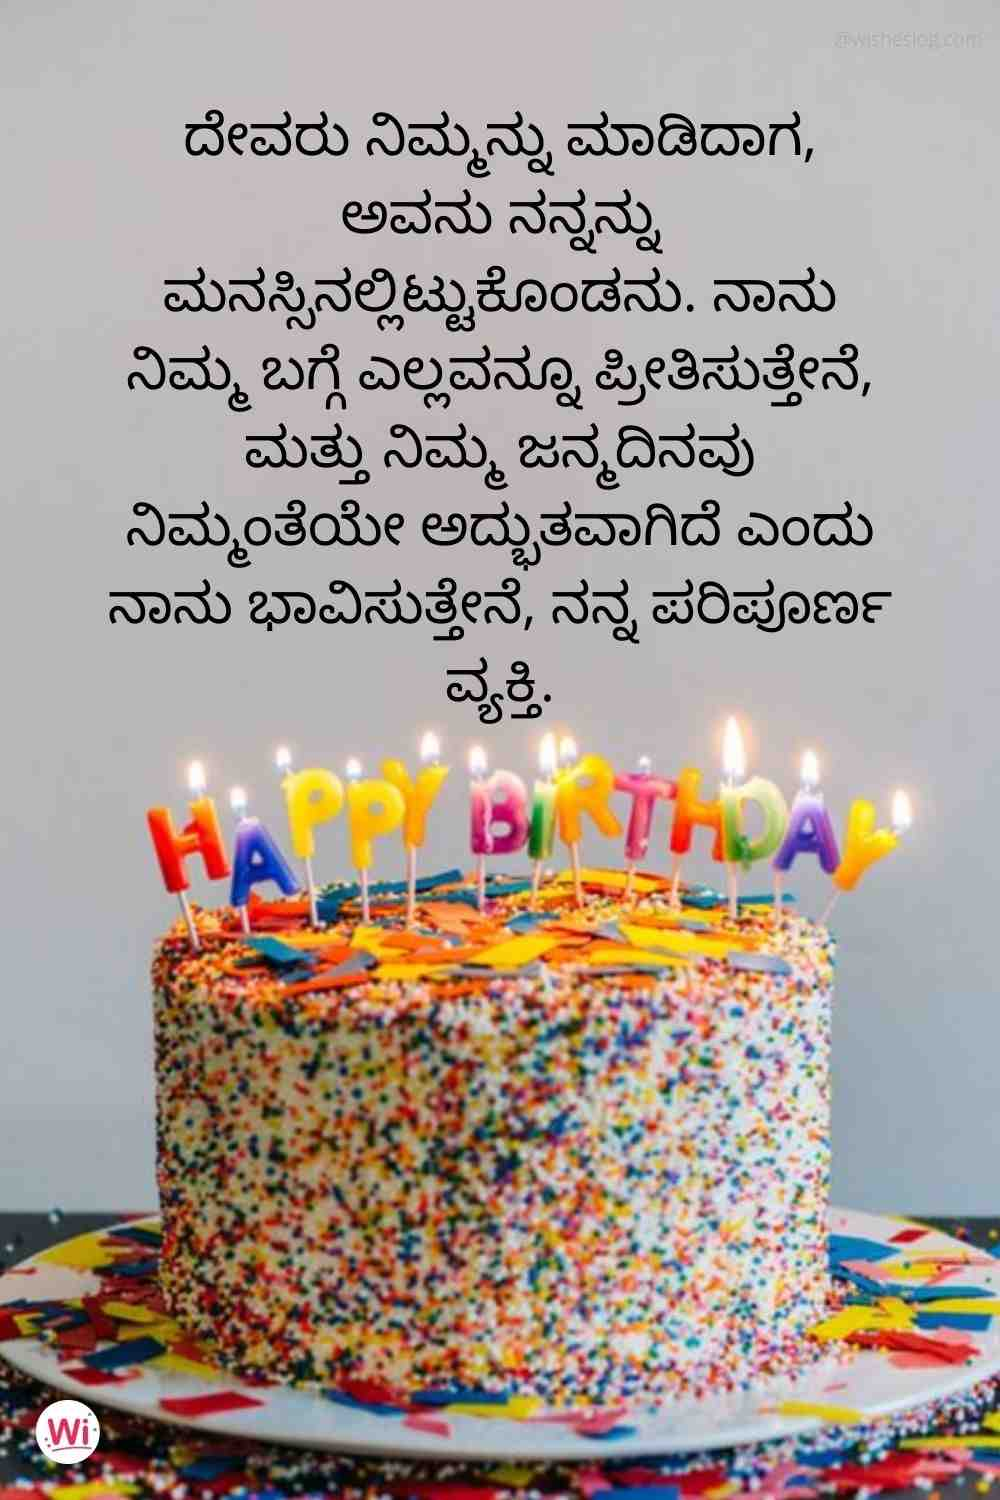 romantic birthday wishes for him in kannada